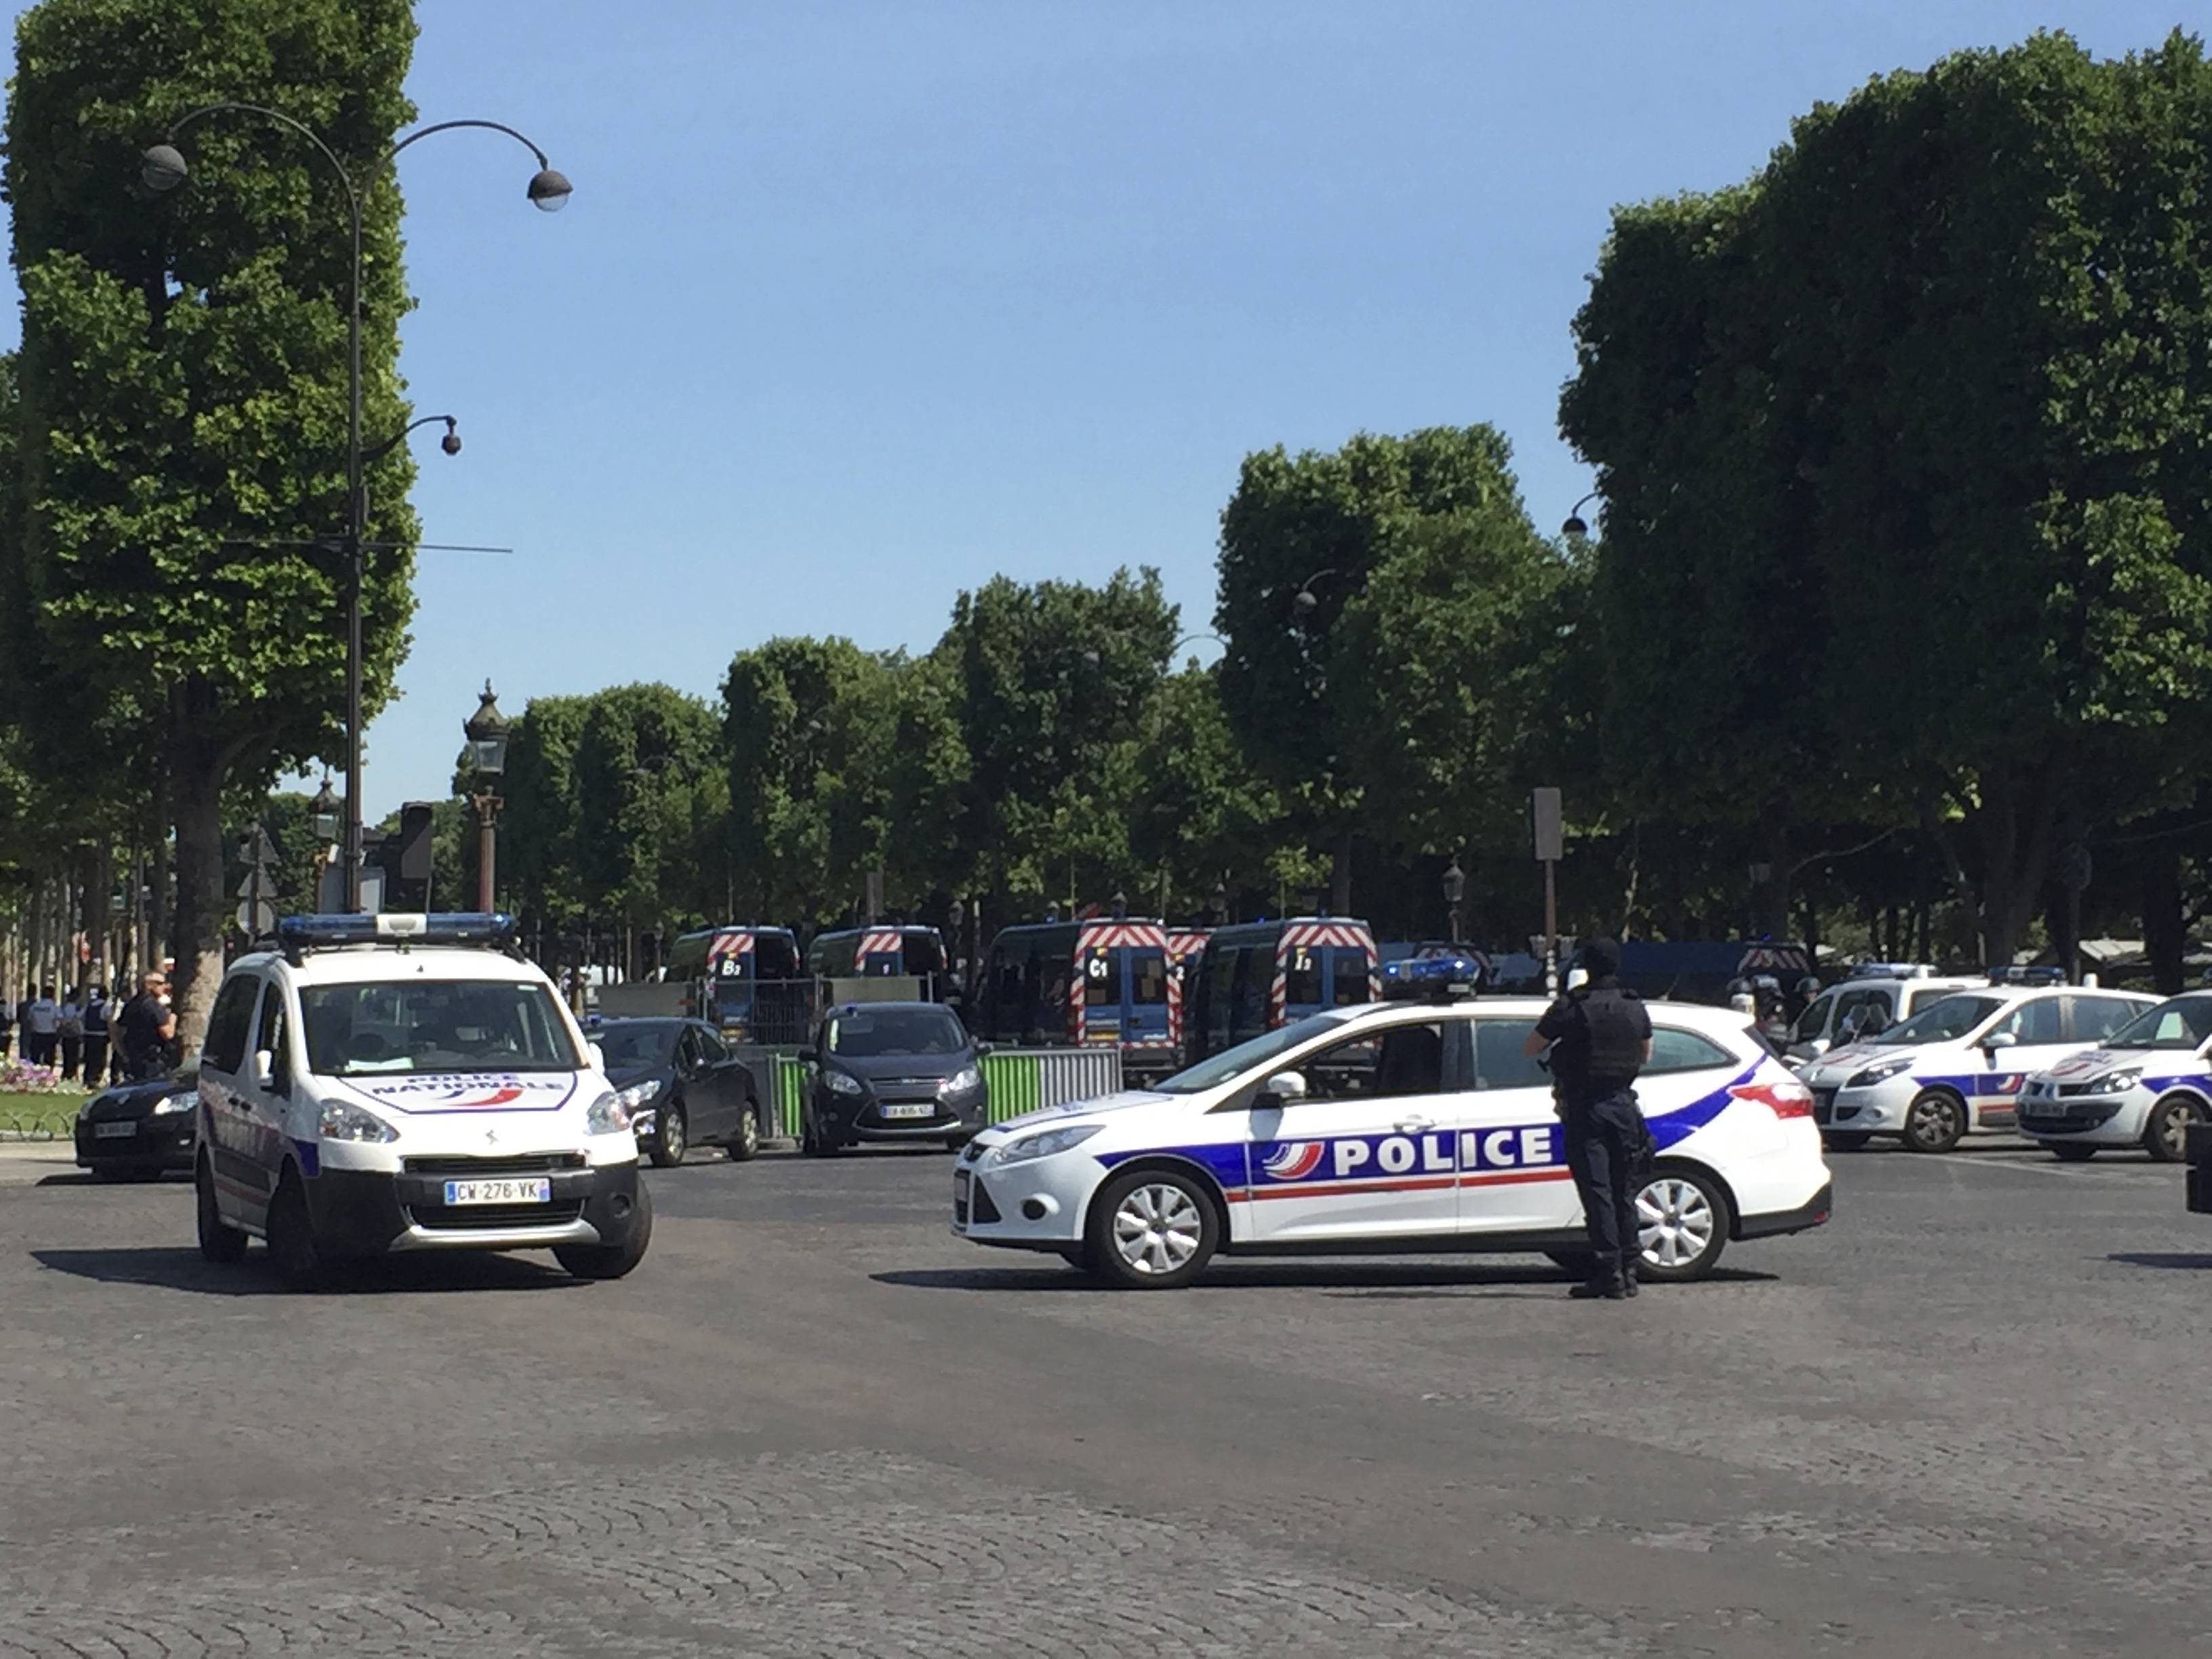 Police vehicles prevent the access to the Champs Elysees avenue in Paris, France, Monday, June 19, 2017. Paris officials say: Suspected attacker 'downed' after driving into police car on Champs-Élysées.